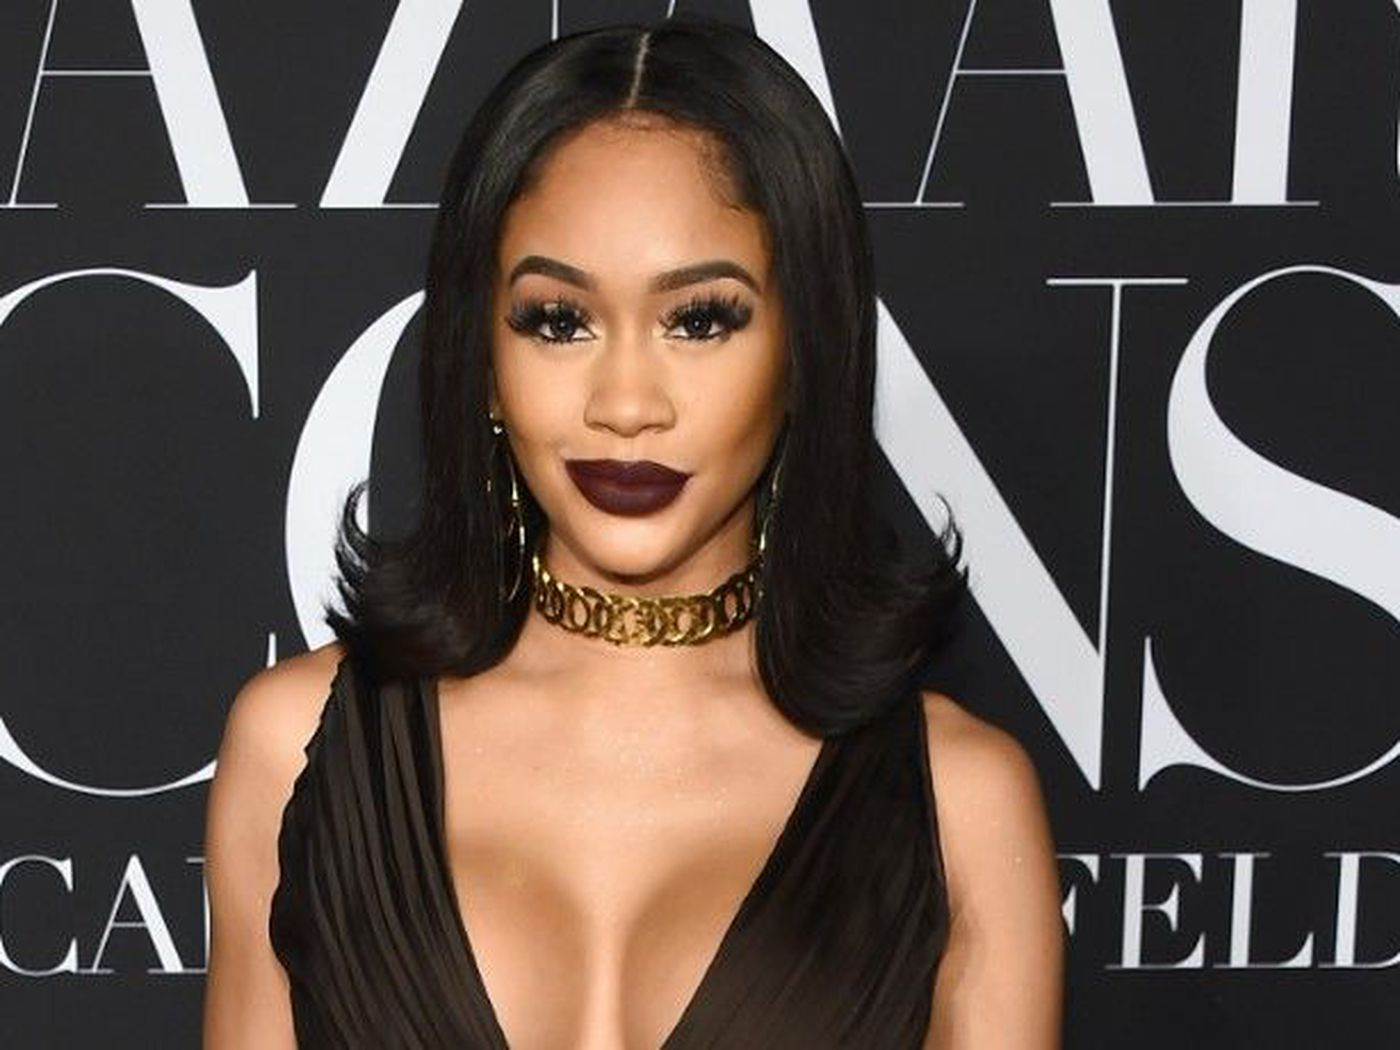 Saweetie Is Enjoying The Single Life – She Is Showing Off Her Beach Body